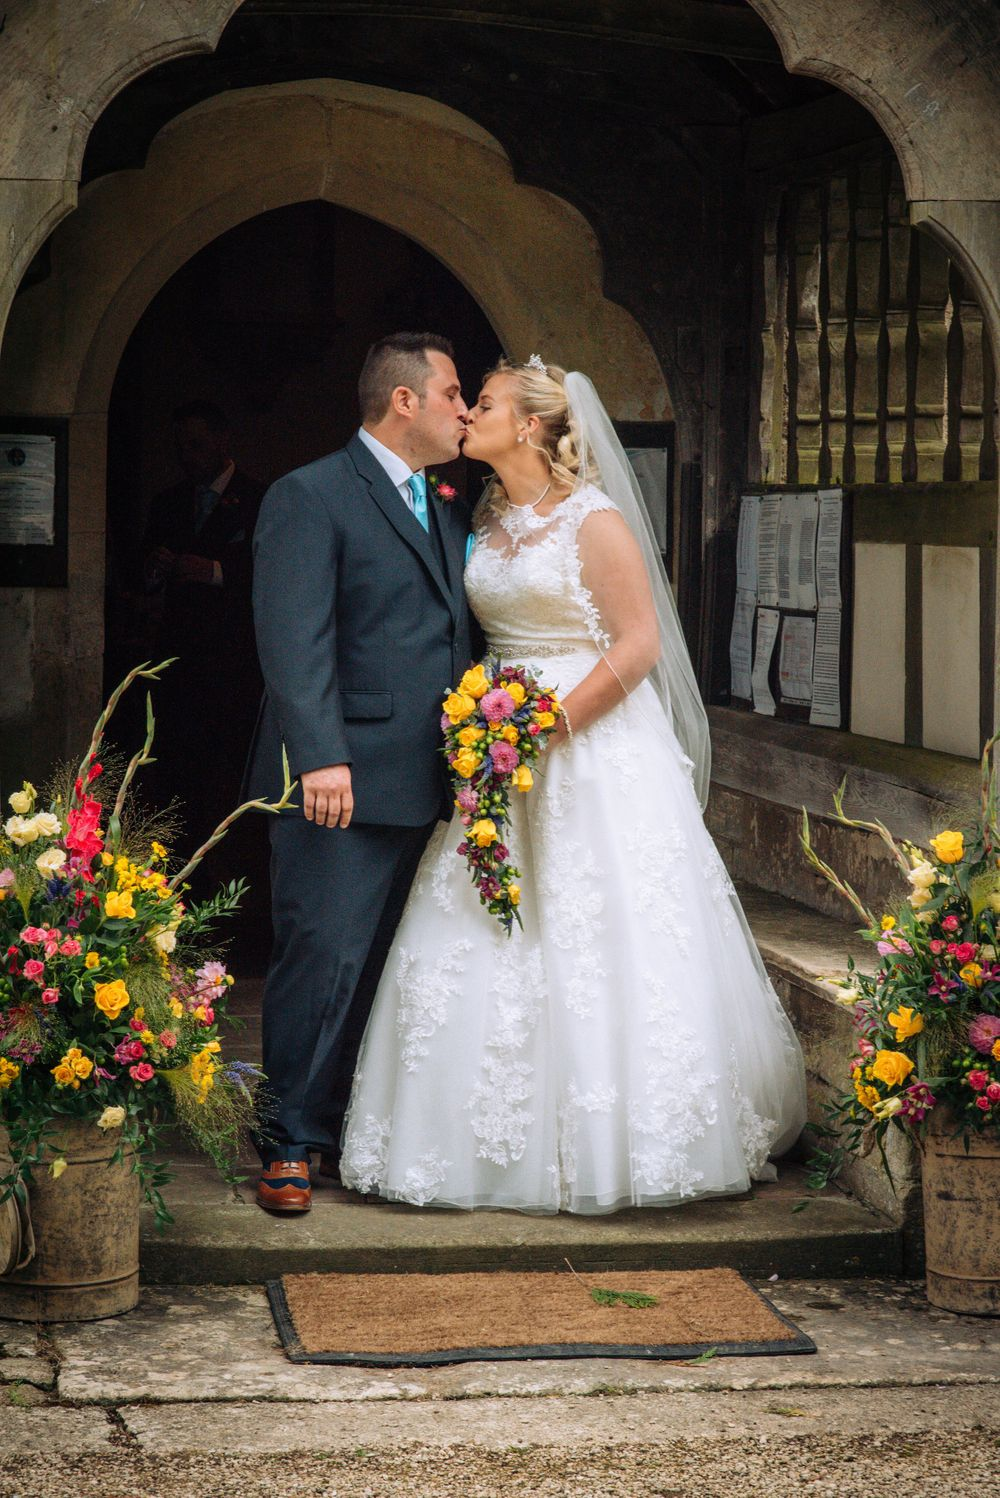 Elmore wedding by Zara Davis Photography, Gloucestershire first kiss